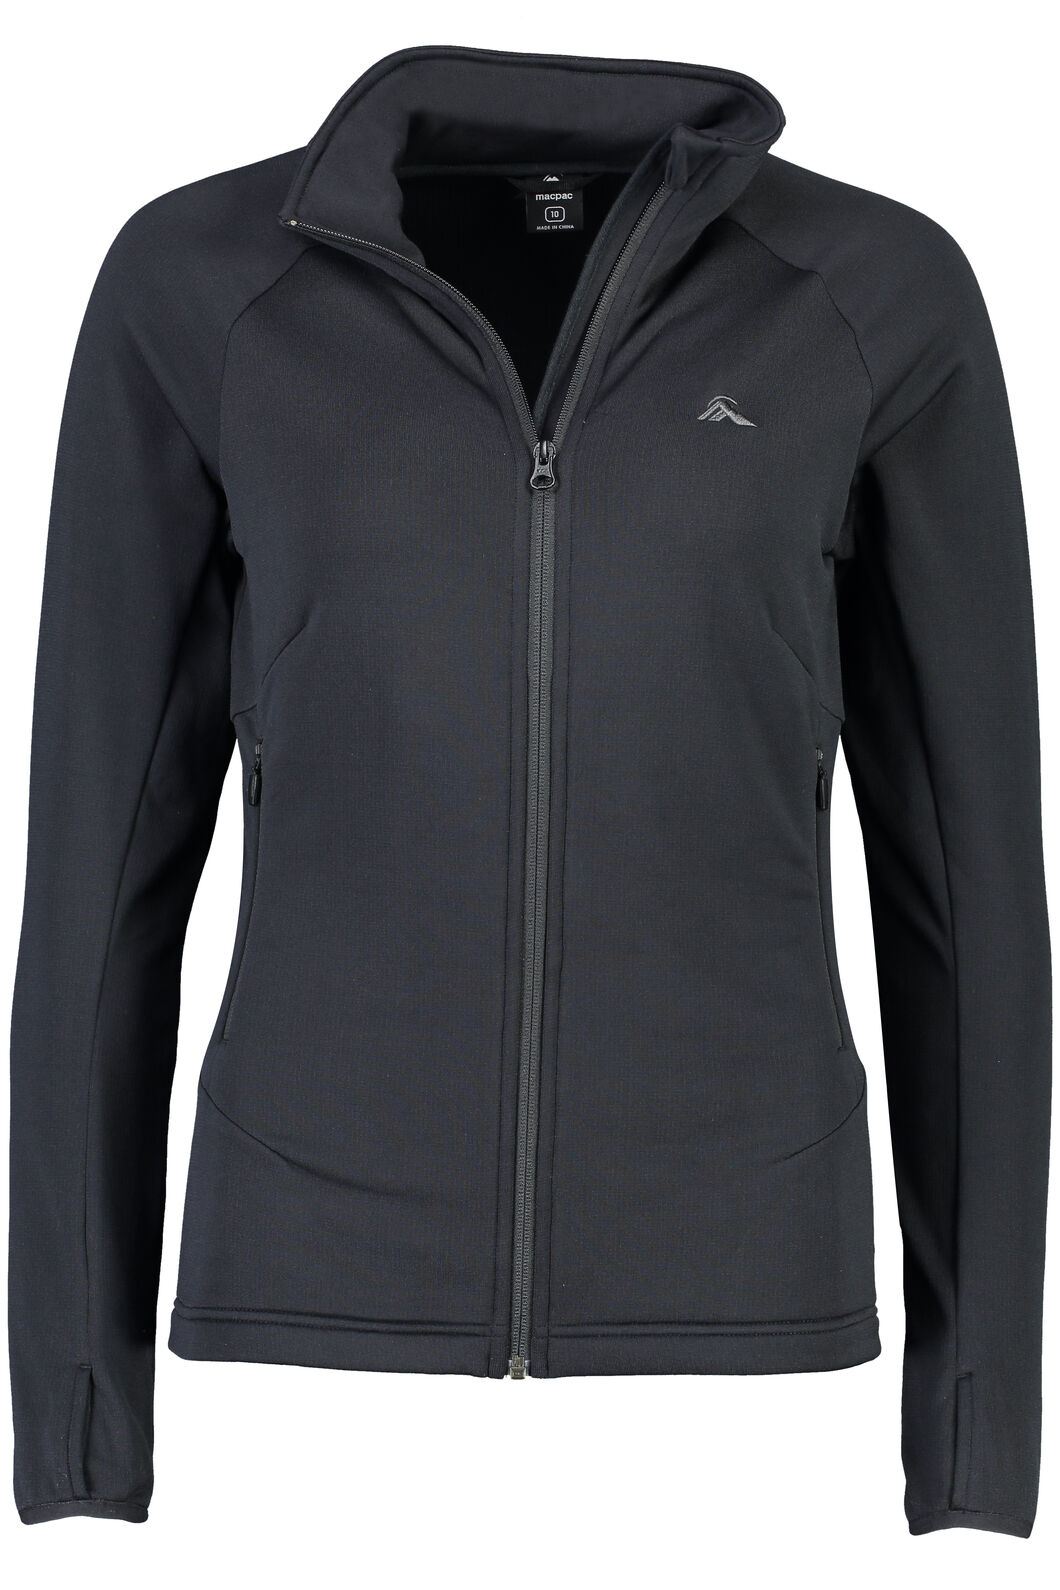 Madeline Jacket - Women's, Black, hi-res